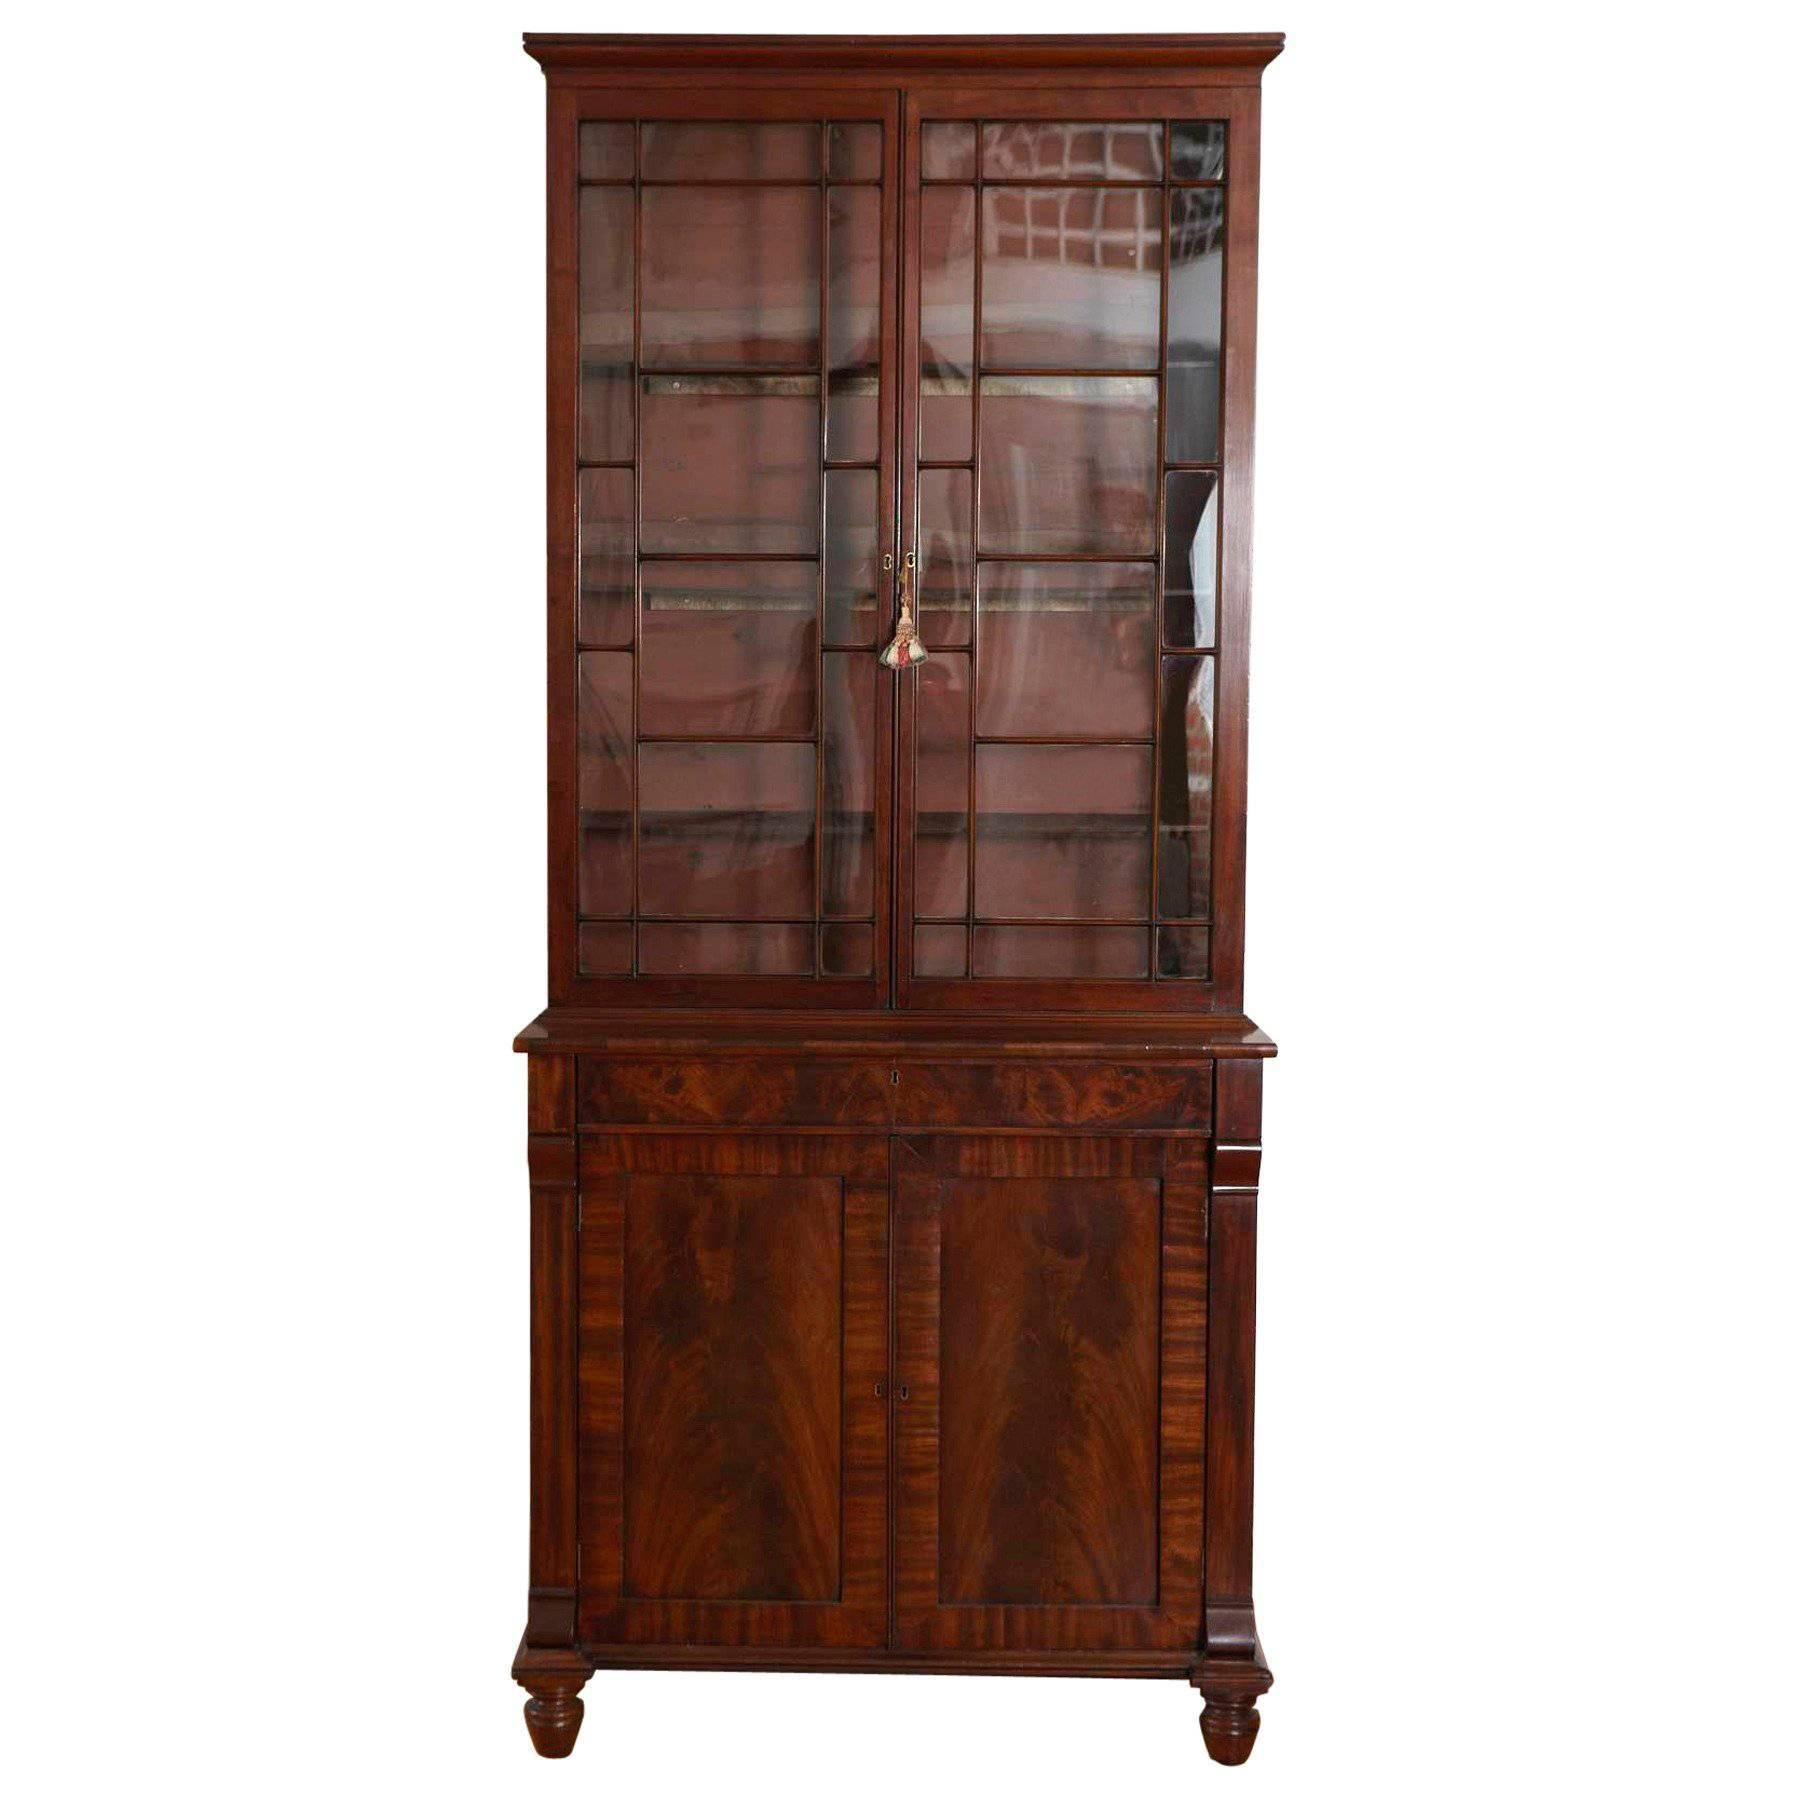 Large Painted Wood Sliding Glass Door China Cabinet Display Case With Storage For Sale At 1stdibs